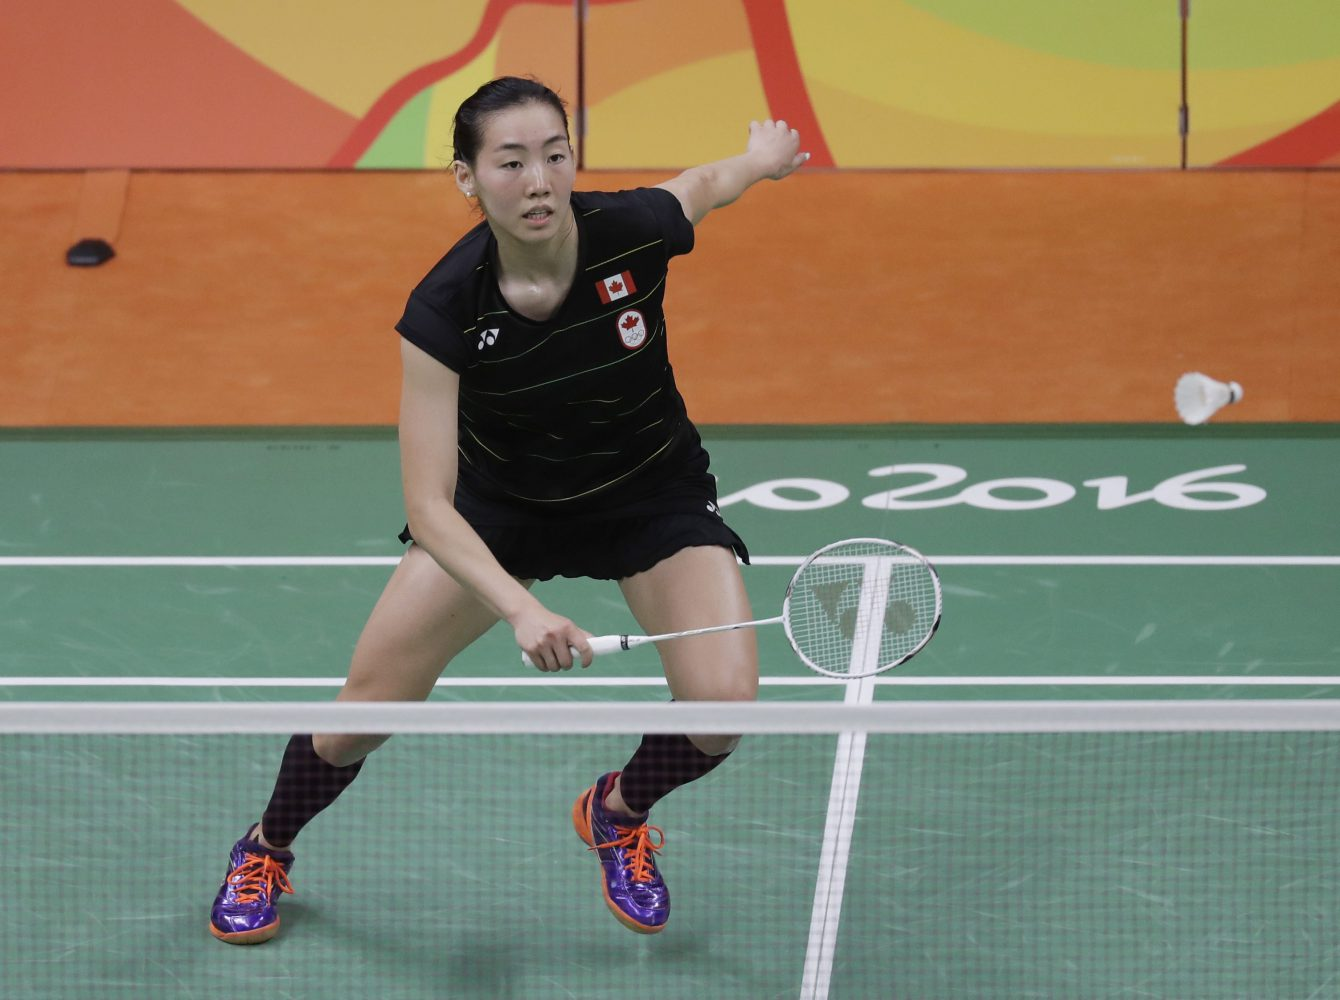 Canada's Michelle Li returns a shot to Hungary's Laura Sarosi during a Women's single match at the 2016 Summer Olympics in Rio de Janeiro, Brazil, Saturday, Aug. 13, 2016. (AP Photo/Kin Cheung)